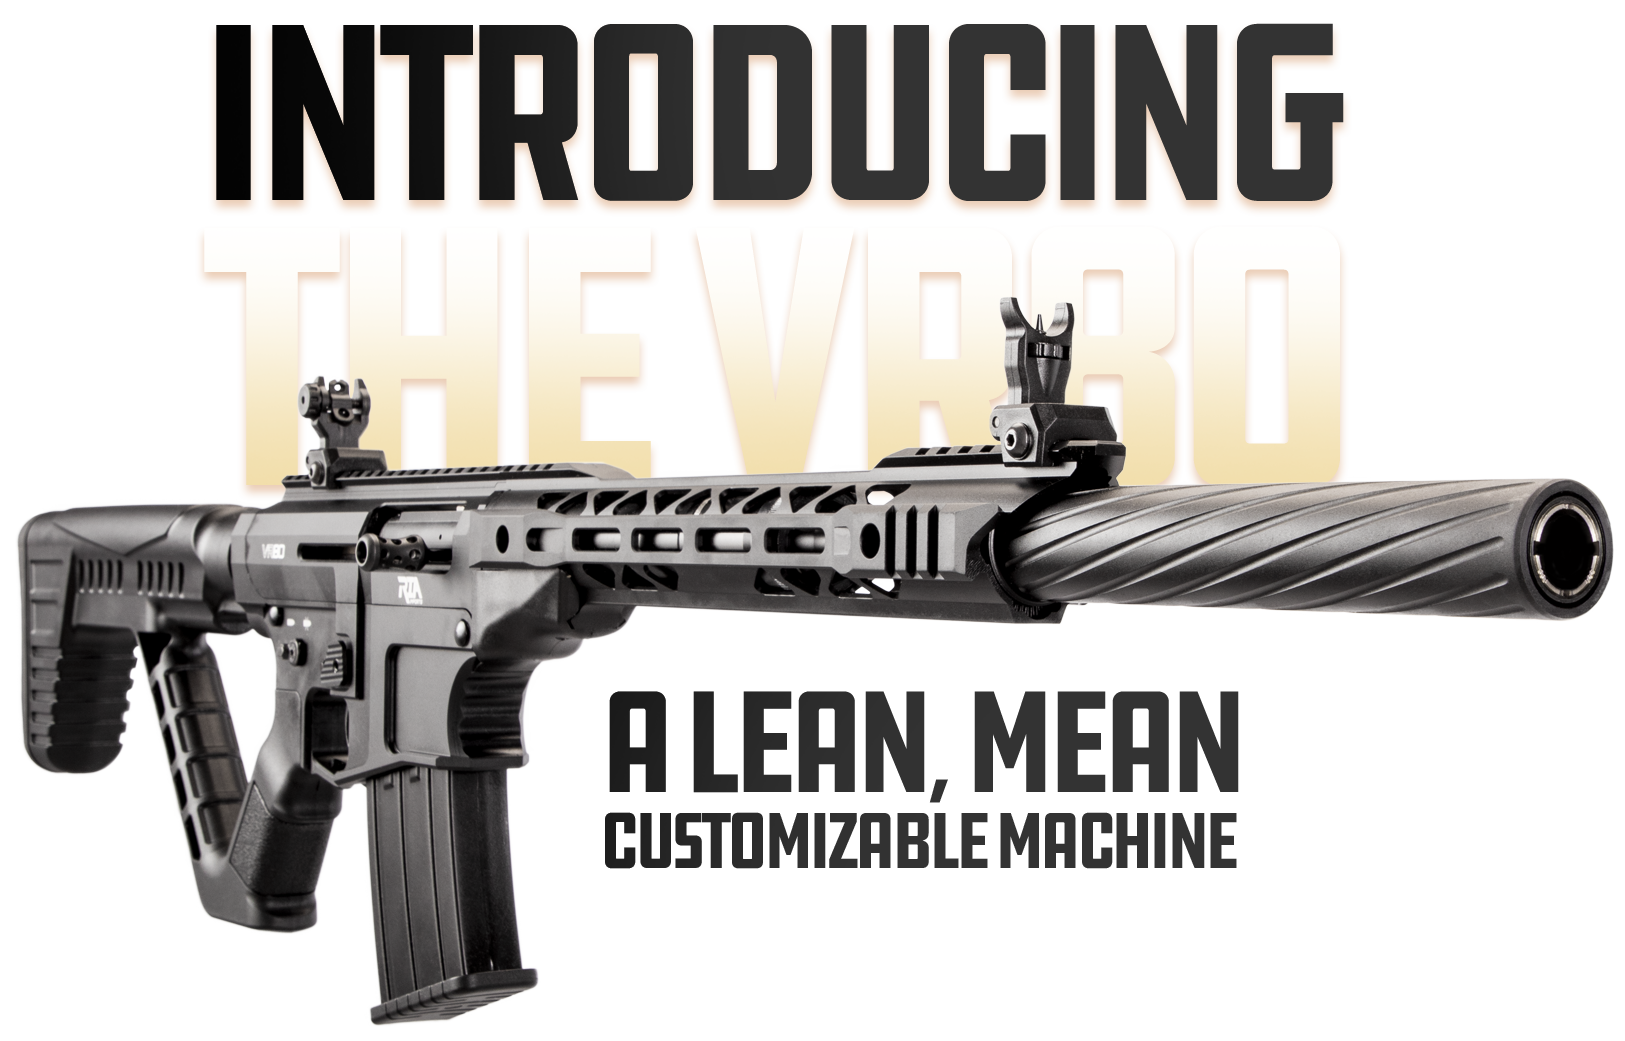 Vr80 Armscor International Inc The rock island vr80 is a gun i can have fun with, and cheap ammo is the best ammo for having fun. vr80 armscor international inc